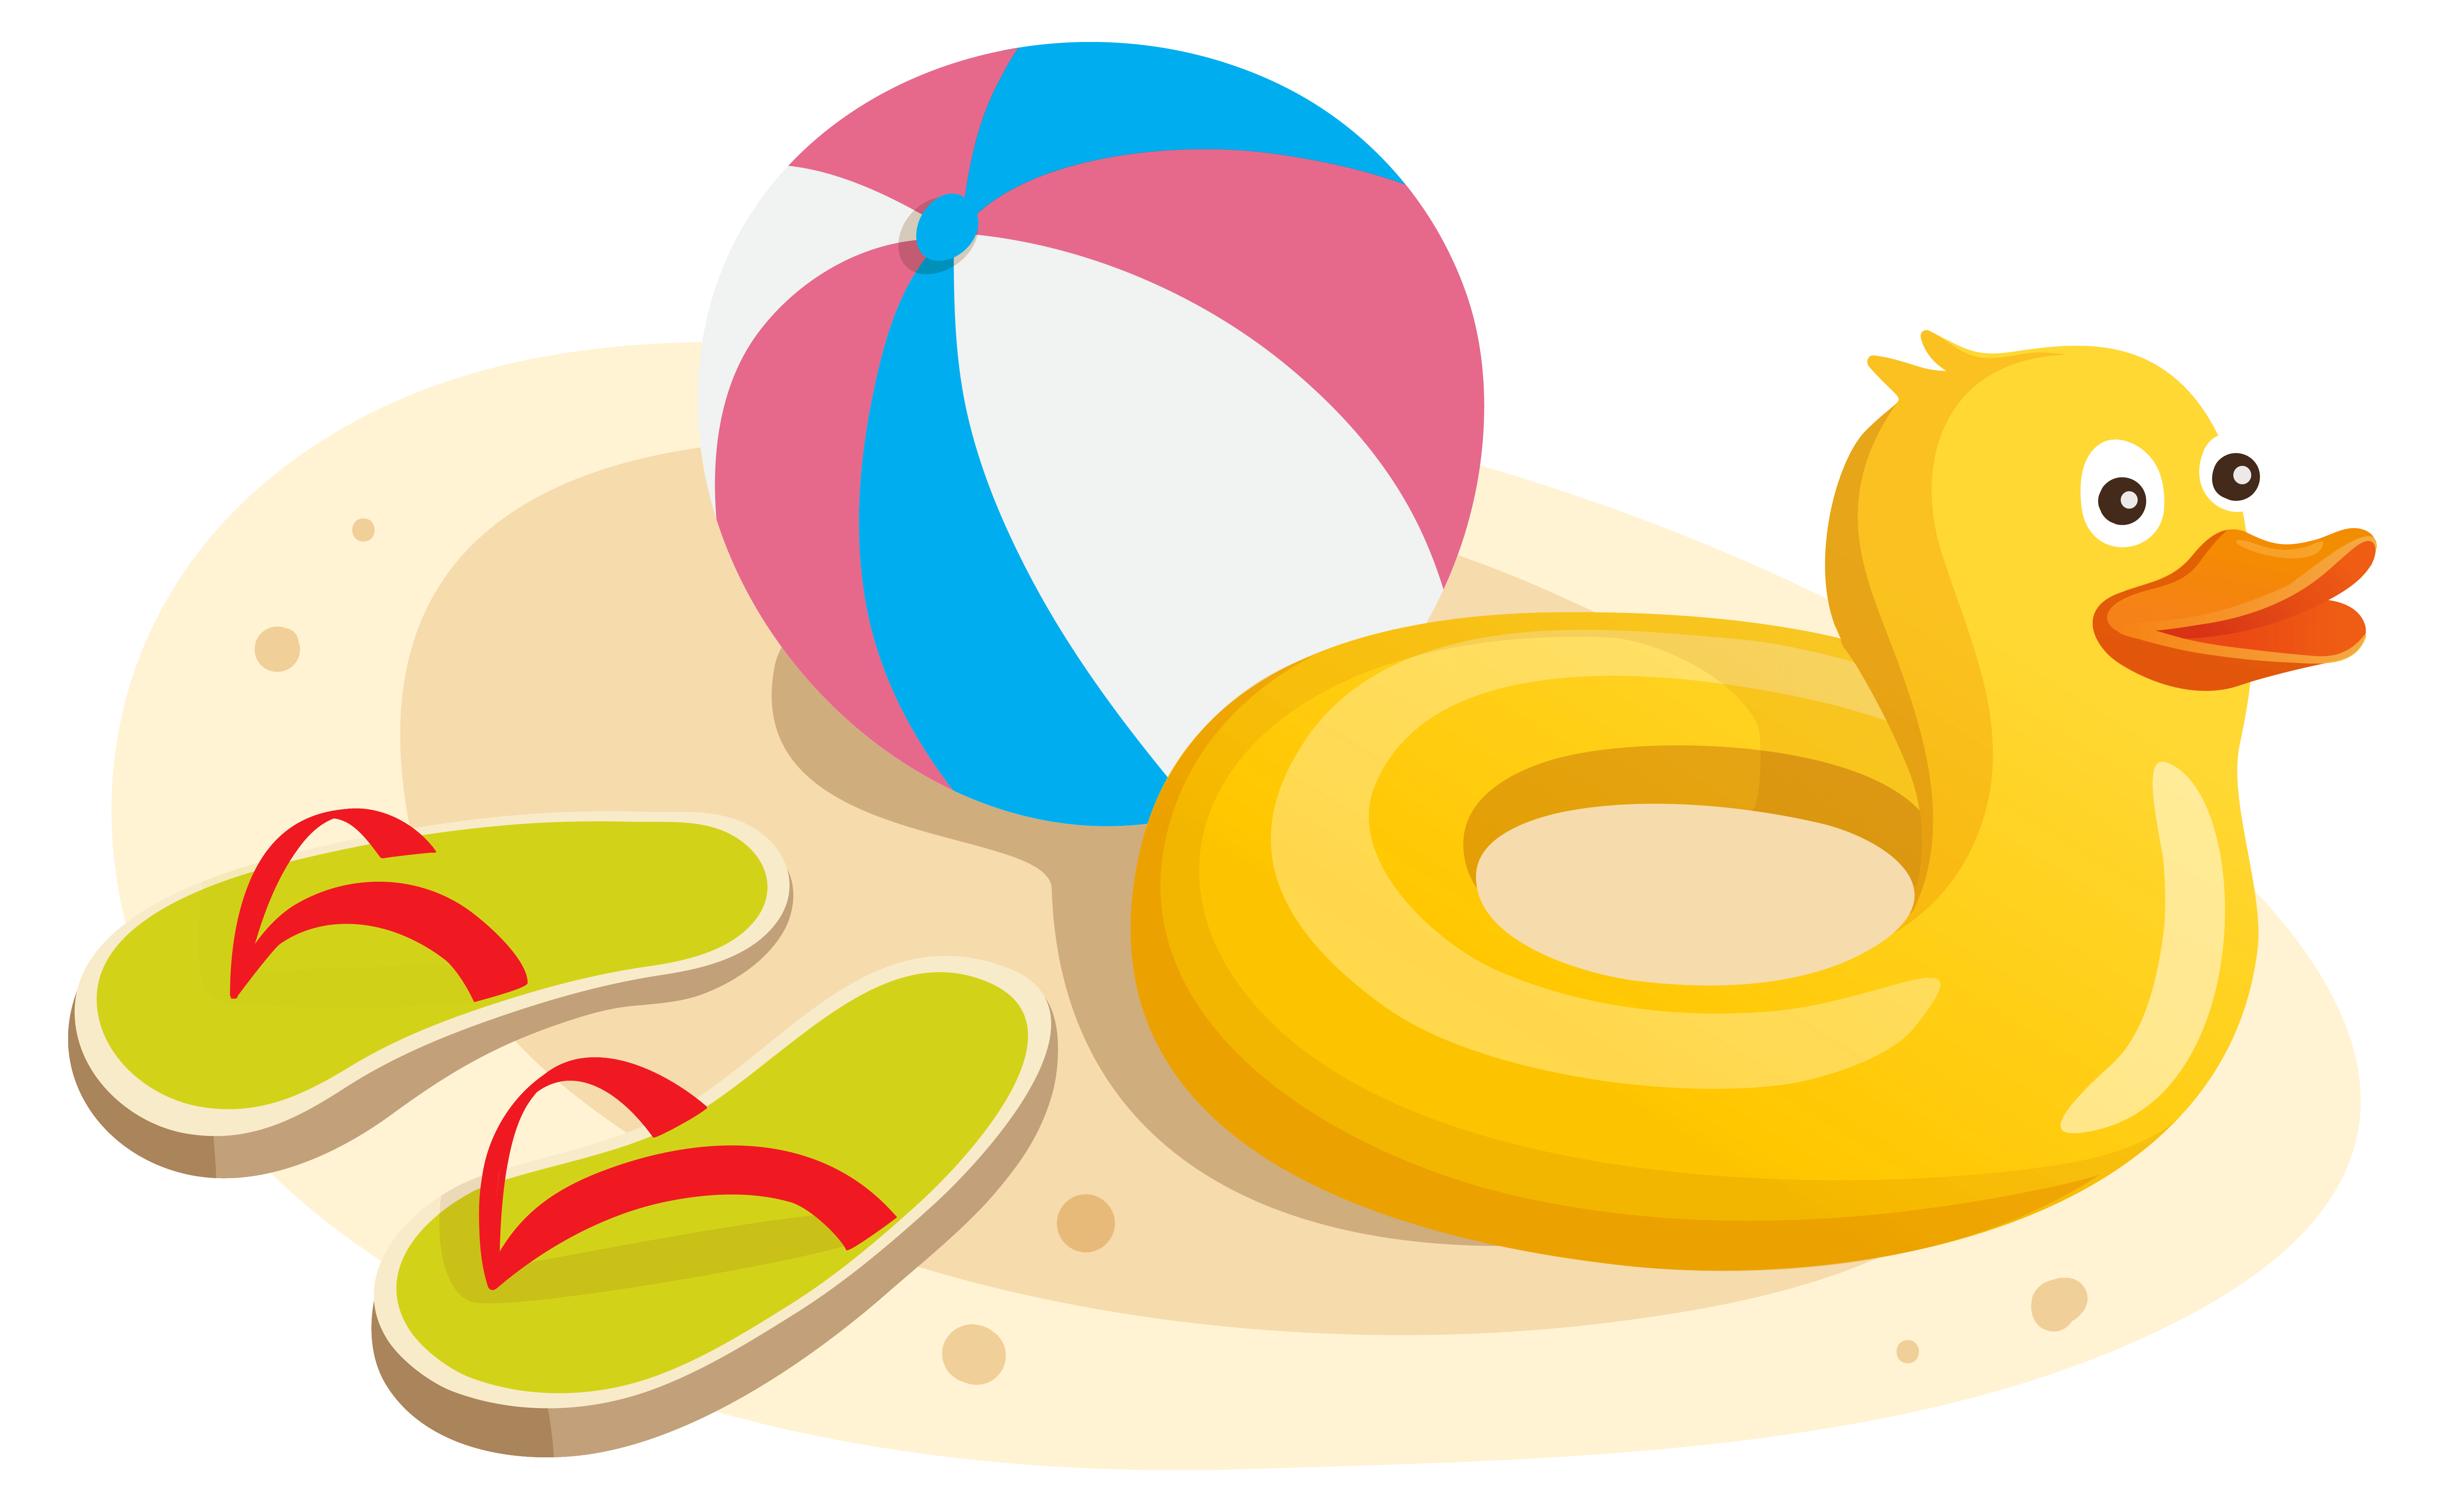 Swimming Ring Clipart 20 Free Cliparts